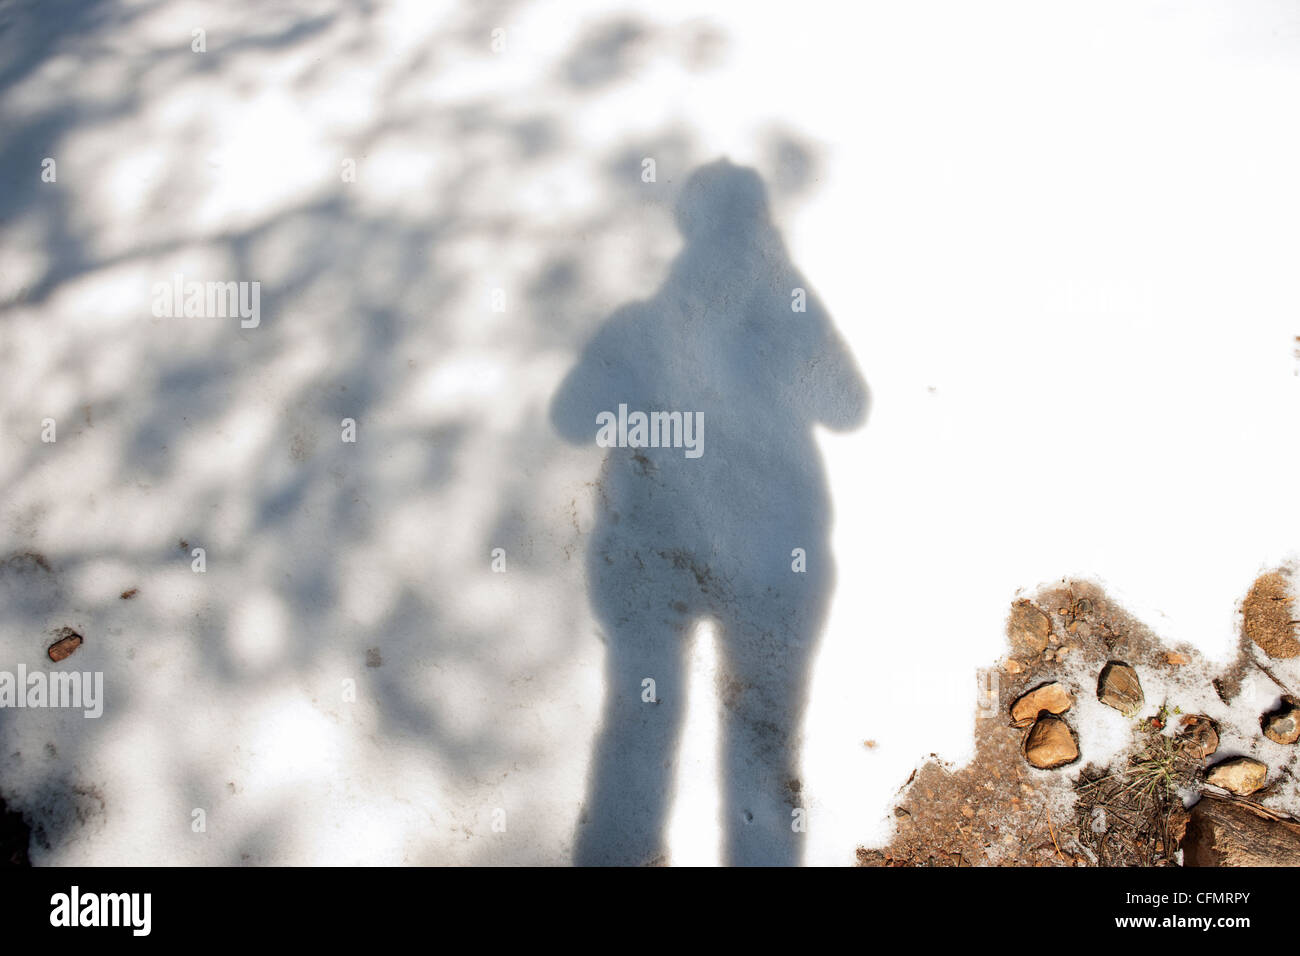 Shadow of photographer on snow. - Stock Image